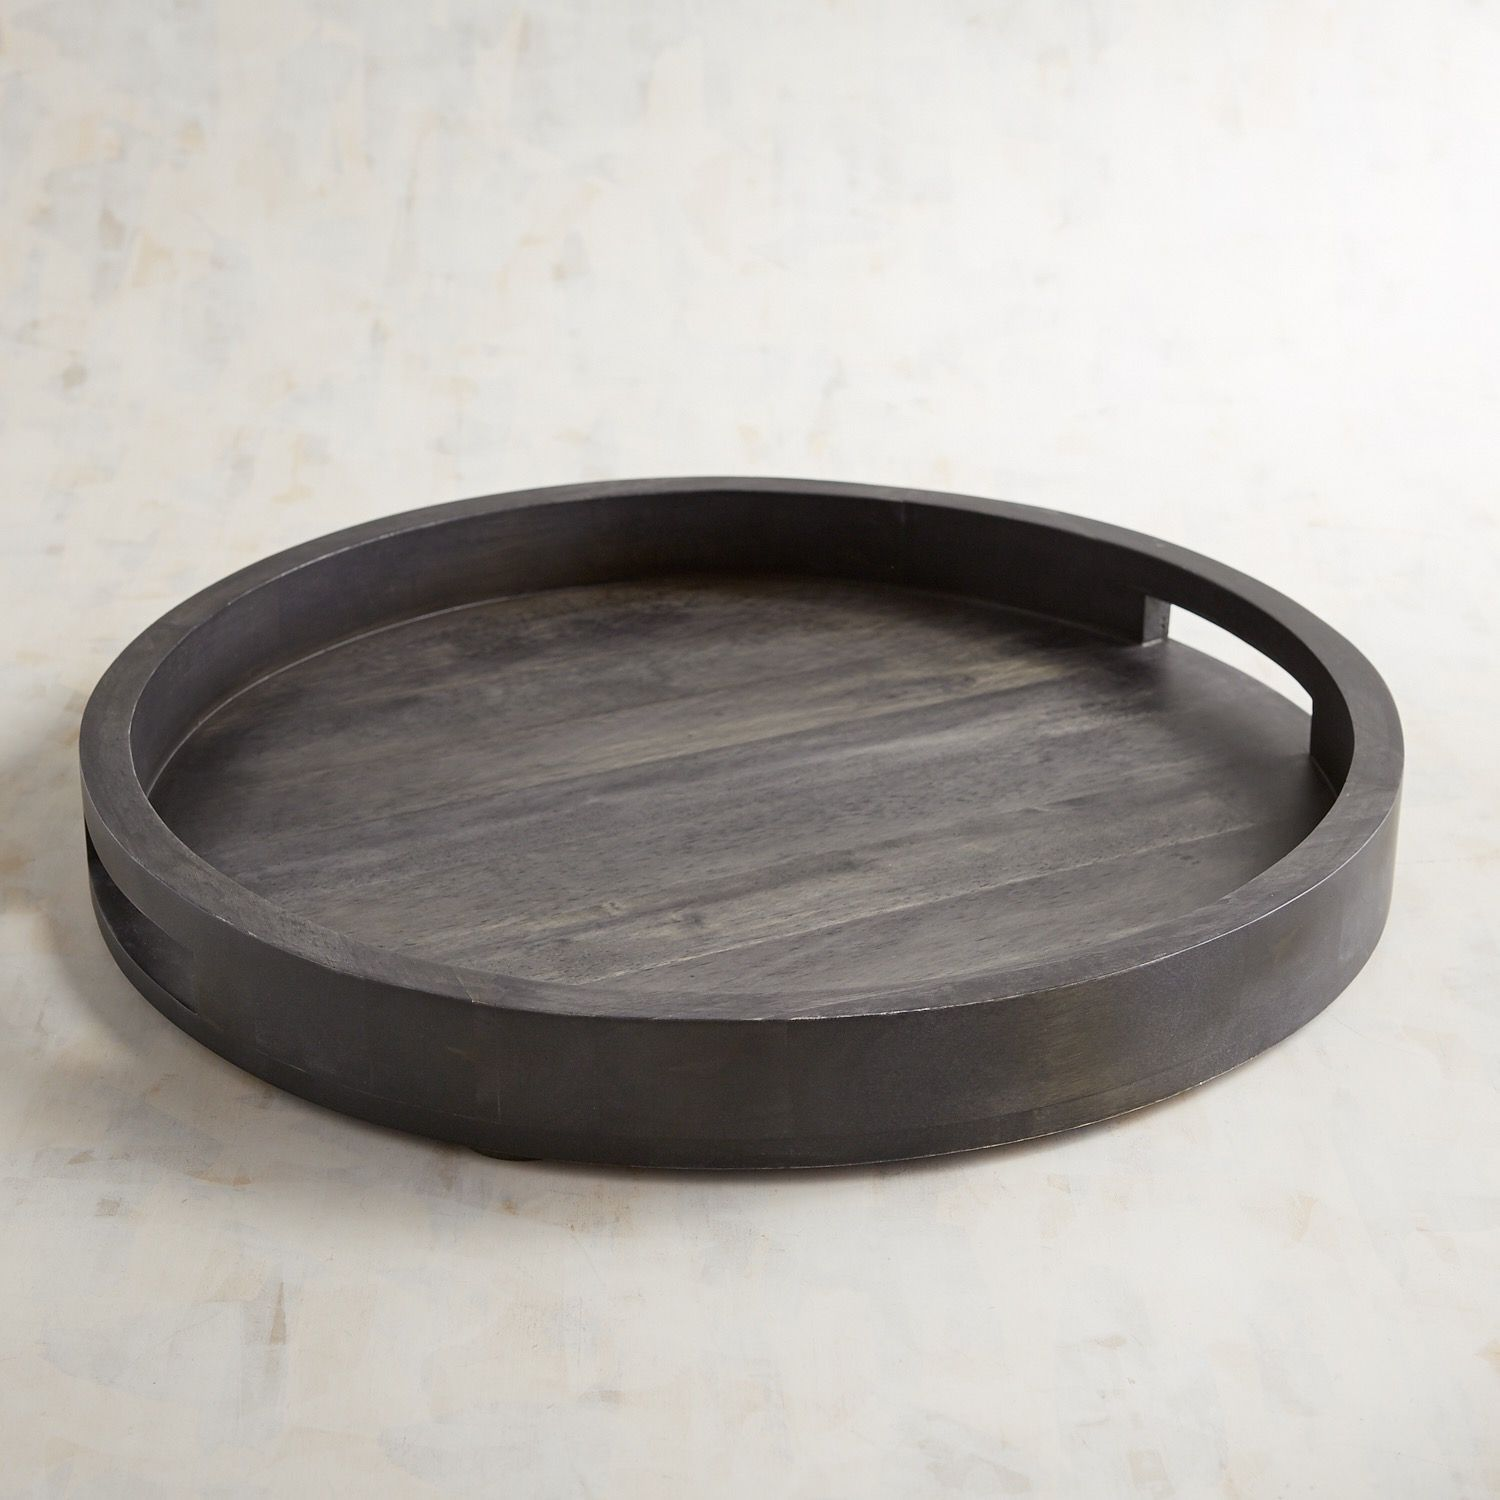 Round Black Washed Wooden Tray Wooden Tray Round Tray Decor Round Wooden Tray